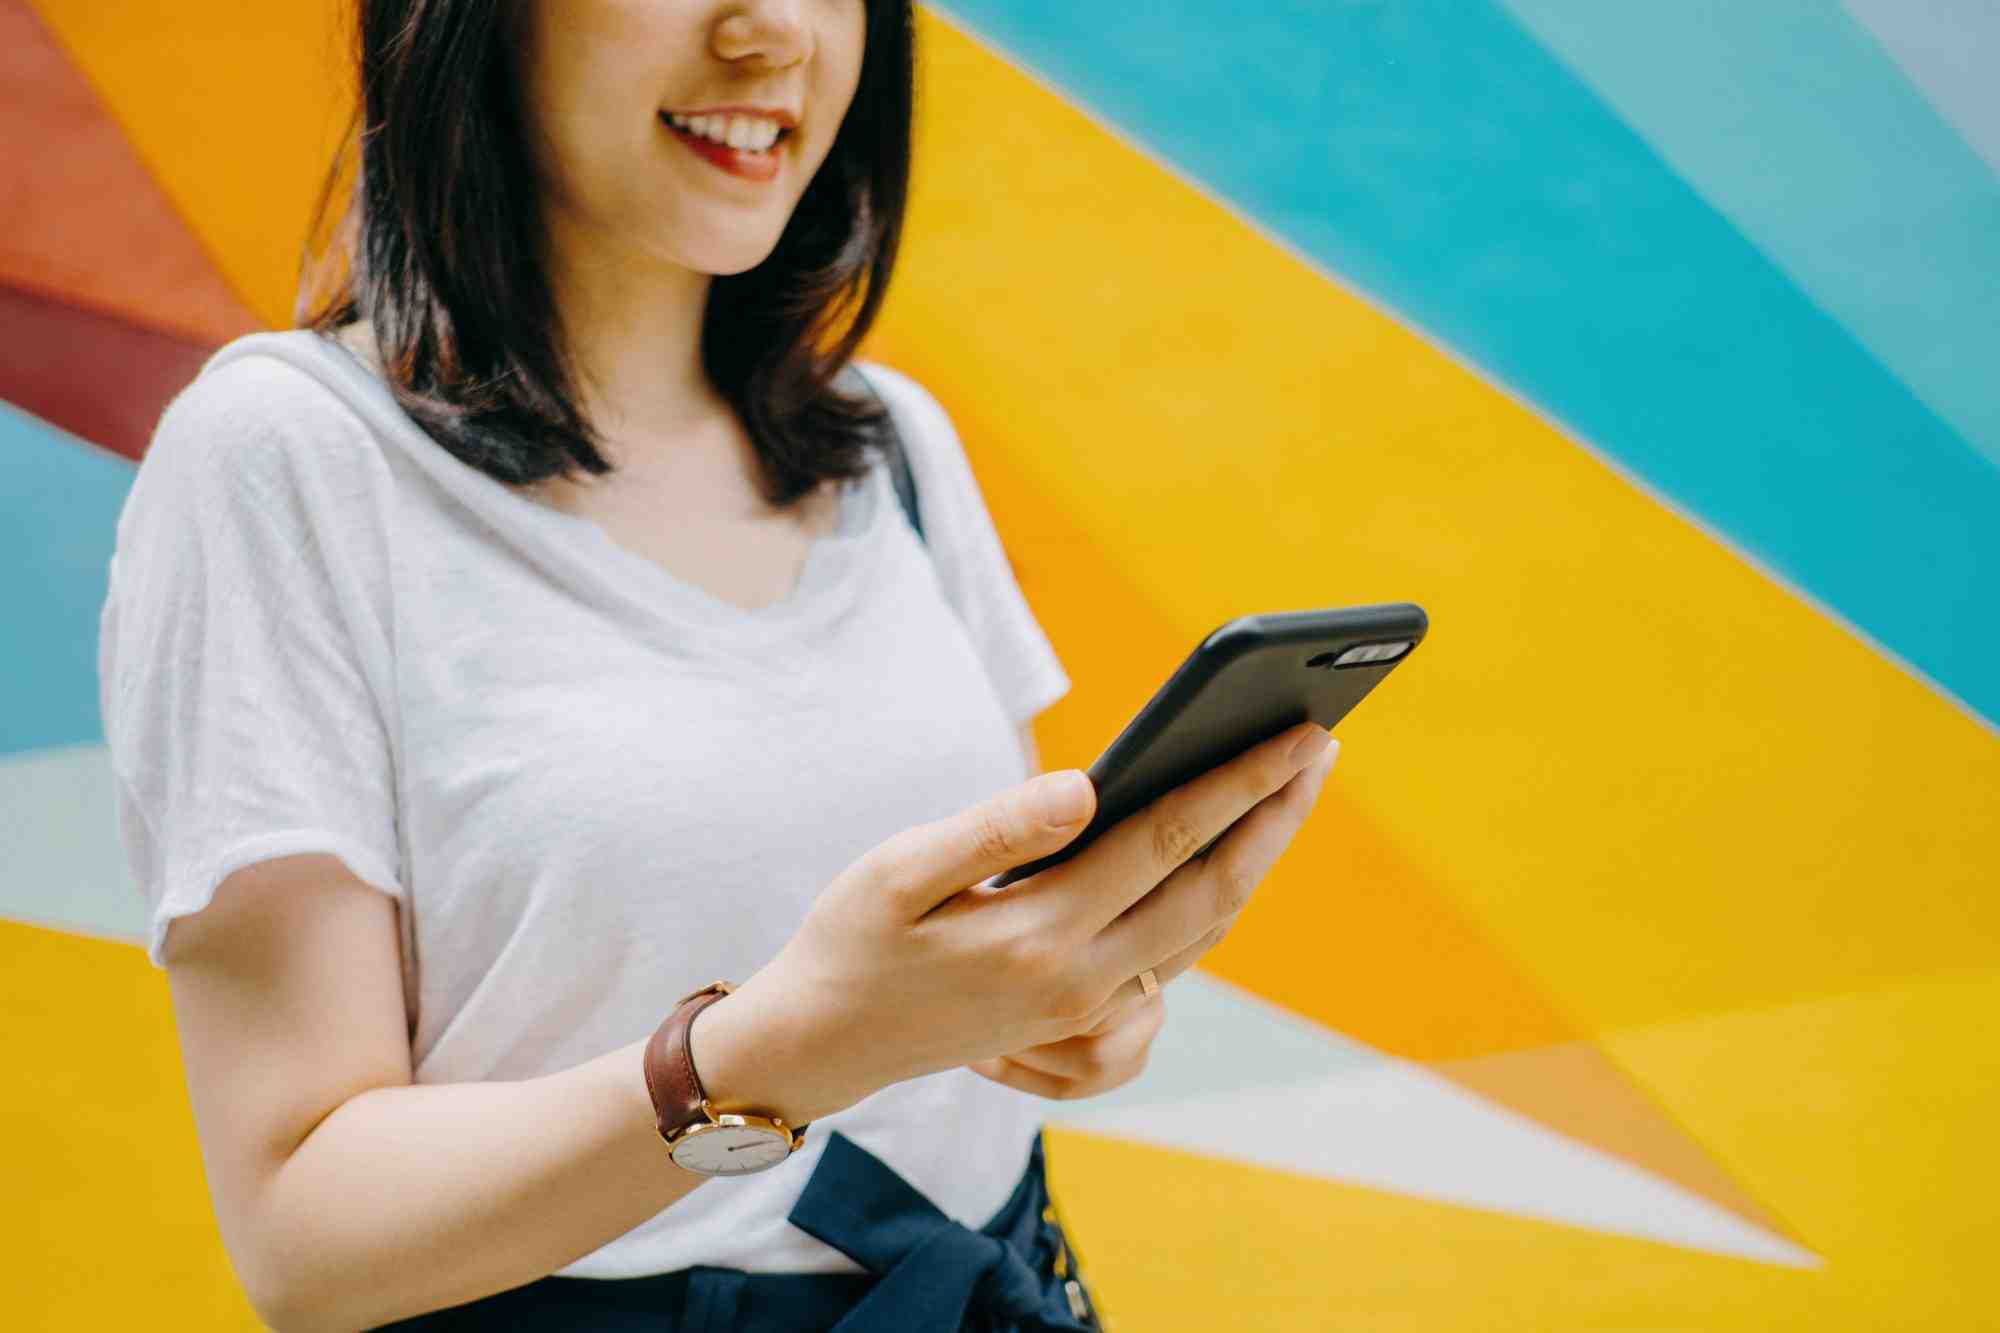 What is the best app for job searching?